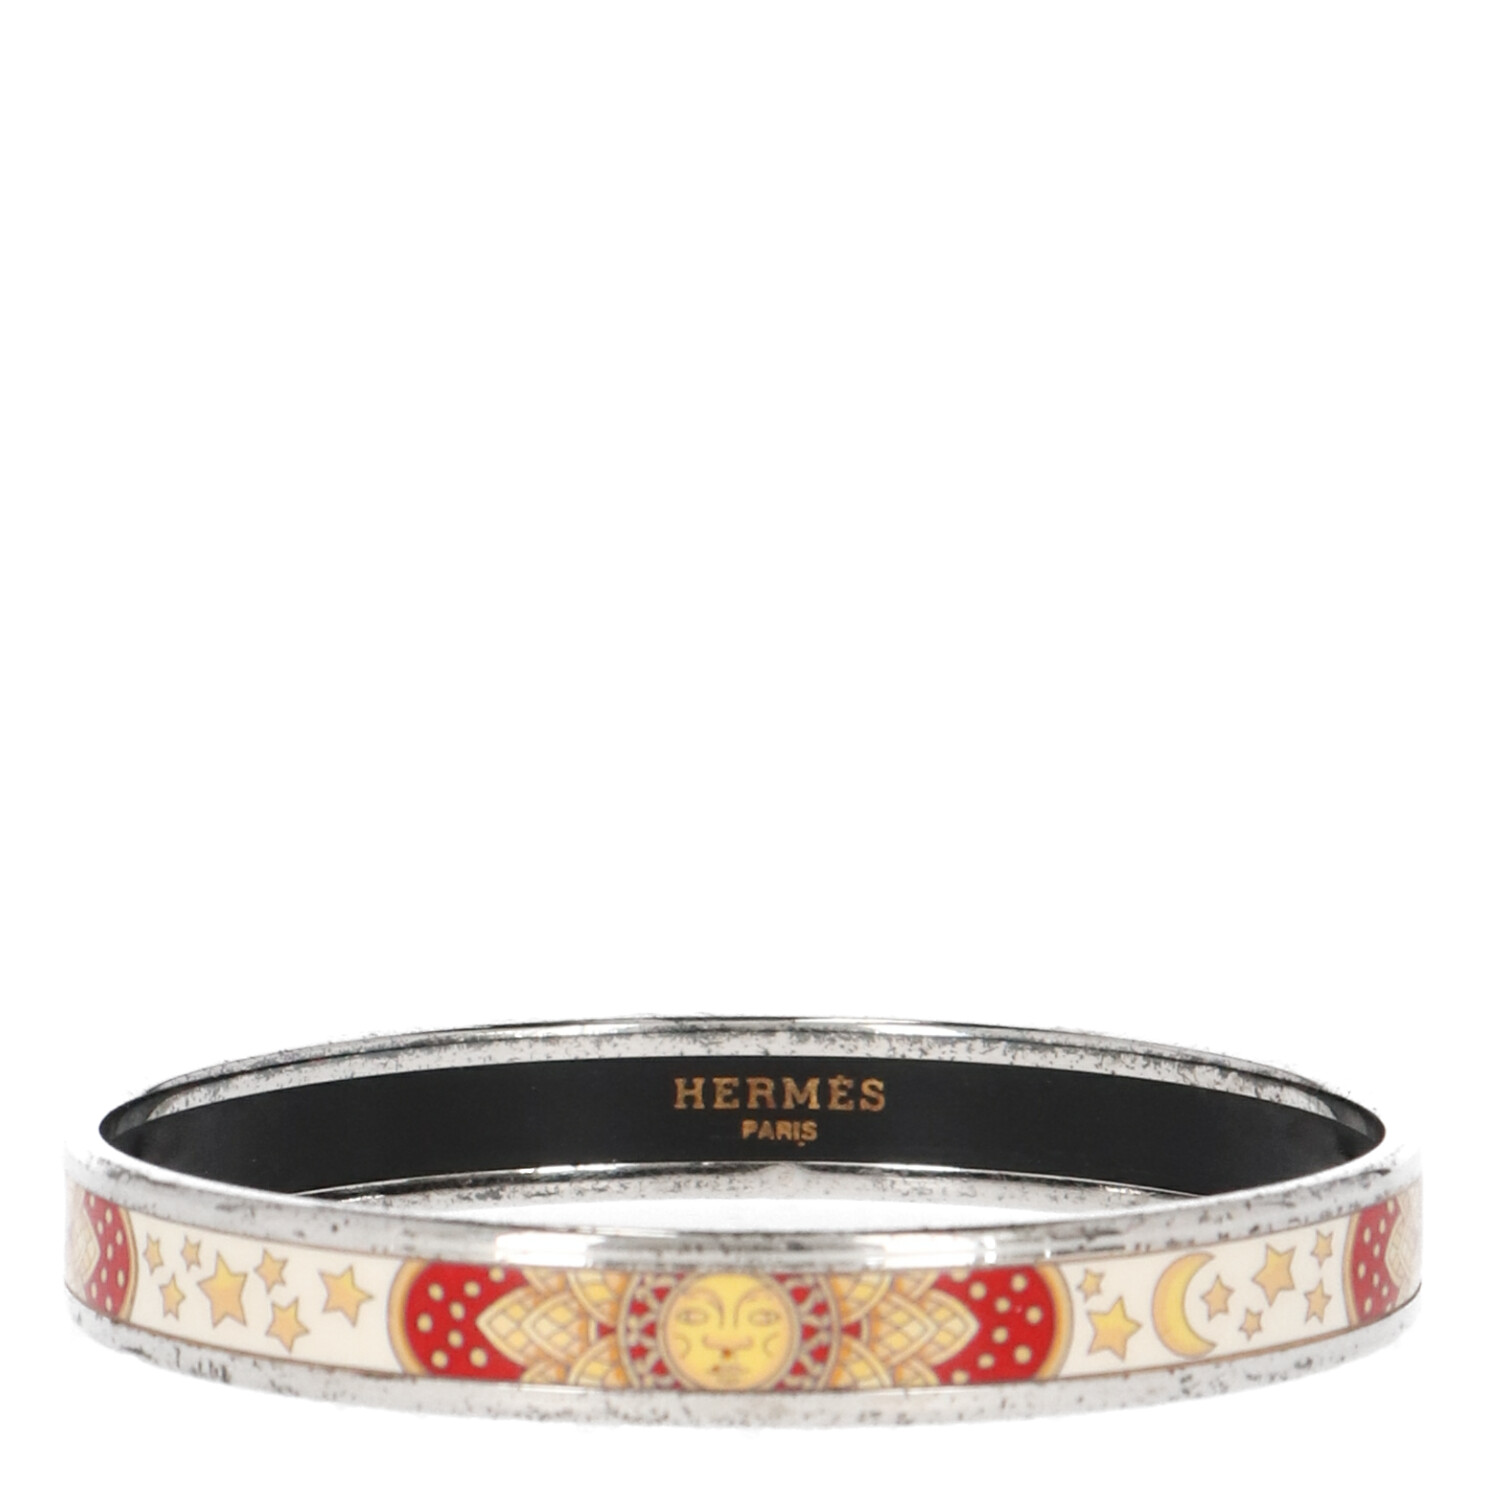 Hermes White Printed Enamel and Silver Bracelet